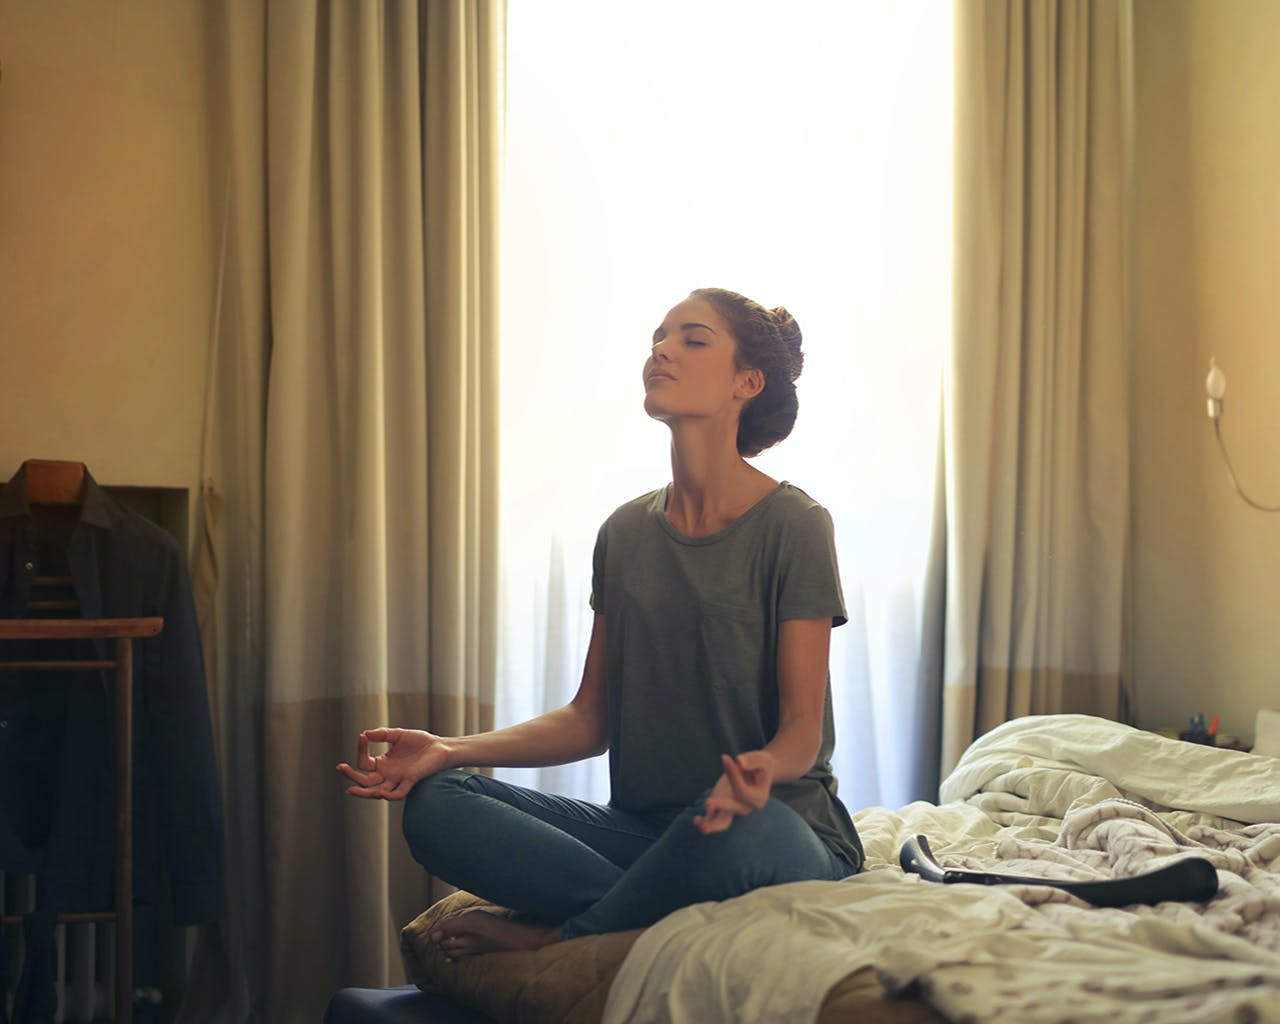 Try These 5 Simple Ways To Calm Yourself Down In Stressful Situations